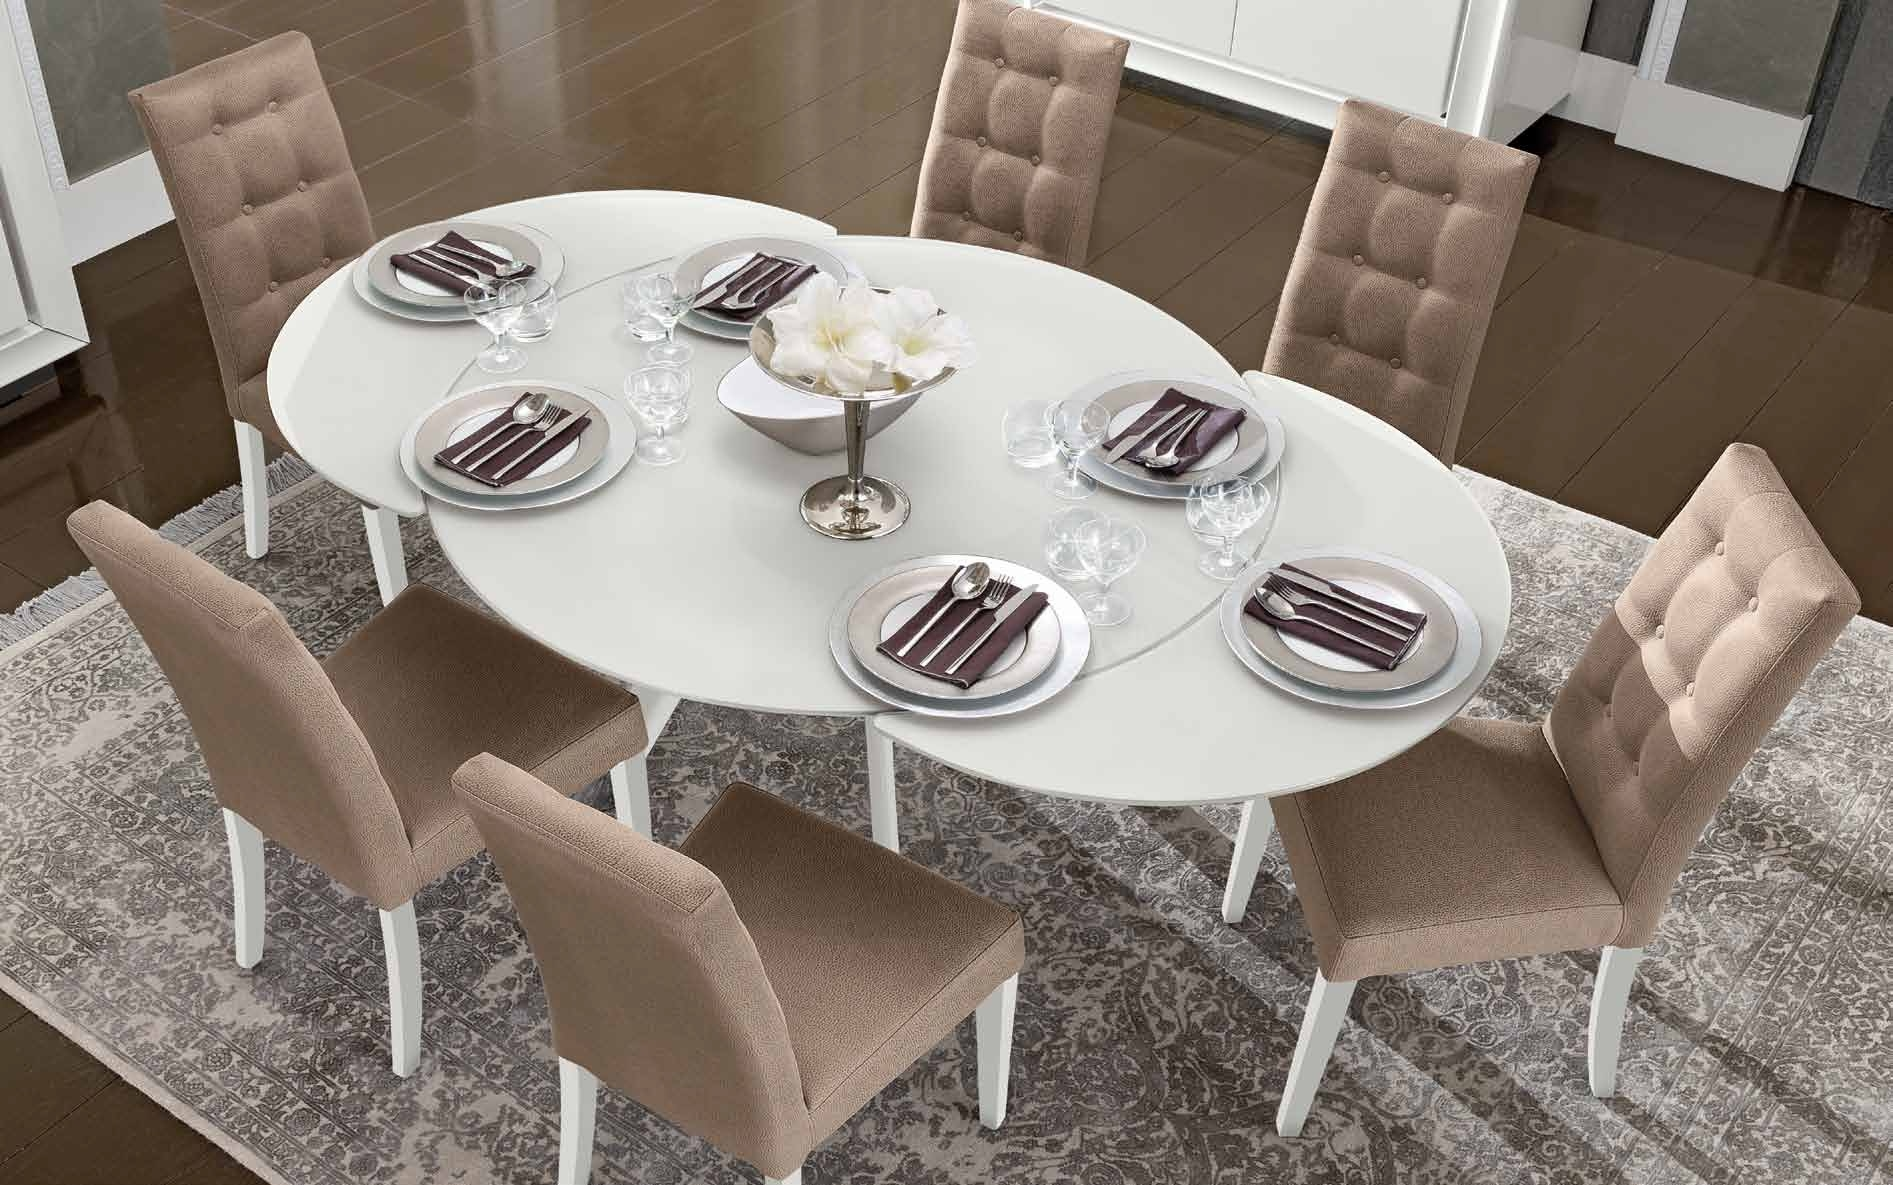 Camel Dama White Italian Dining Set - Round Extending with 6 Chair